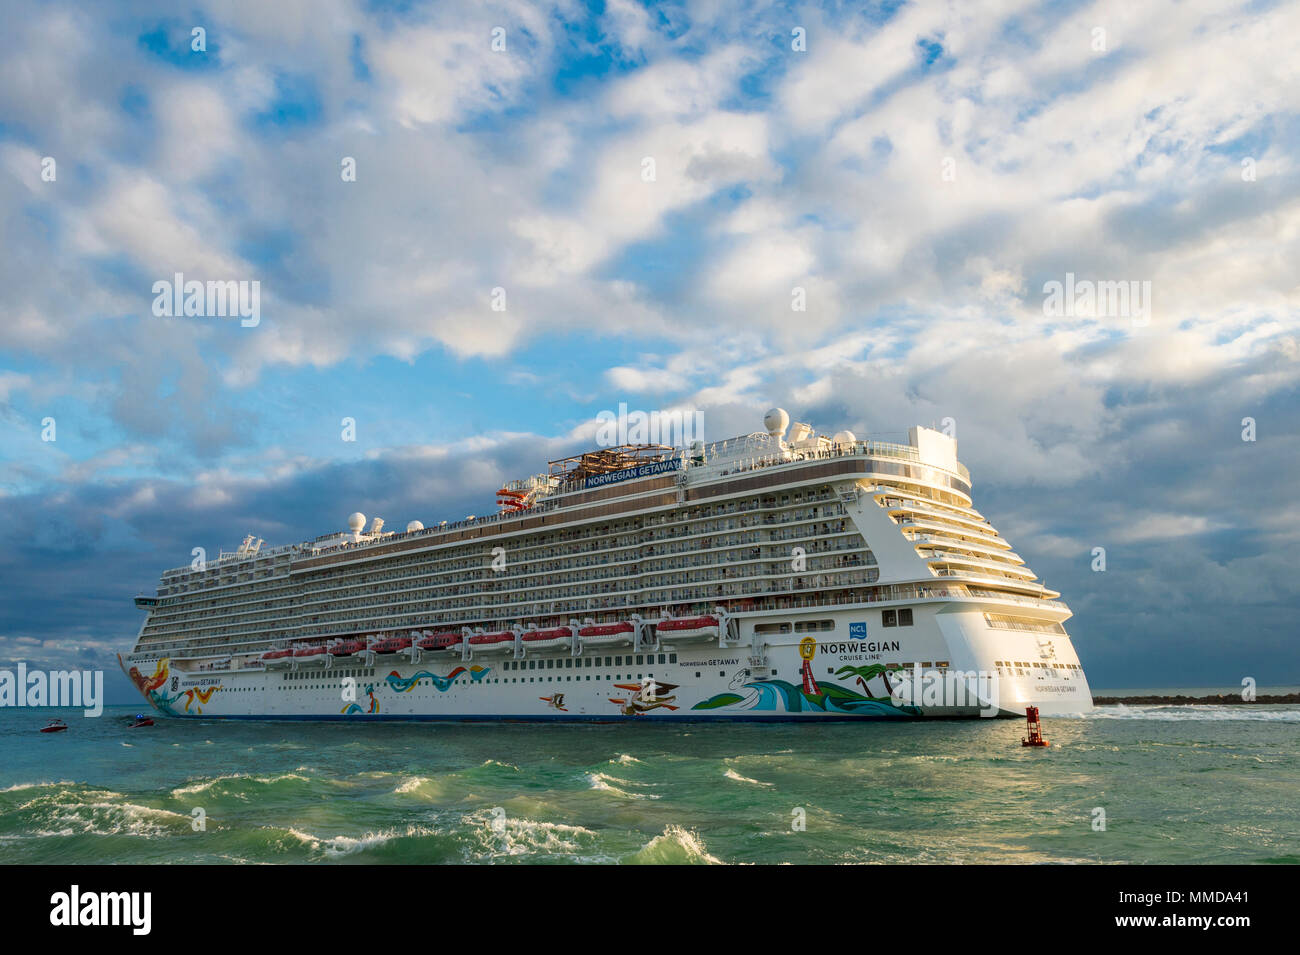 MIAMI, USA - CIRCA DECEMBER, 2017: Norwegian Getaway cruise ship passes South Beach as it leaves port at sunset. - Stock Image